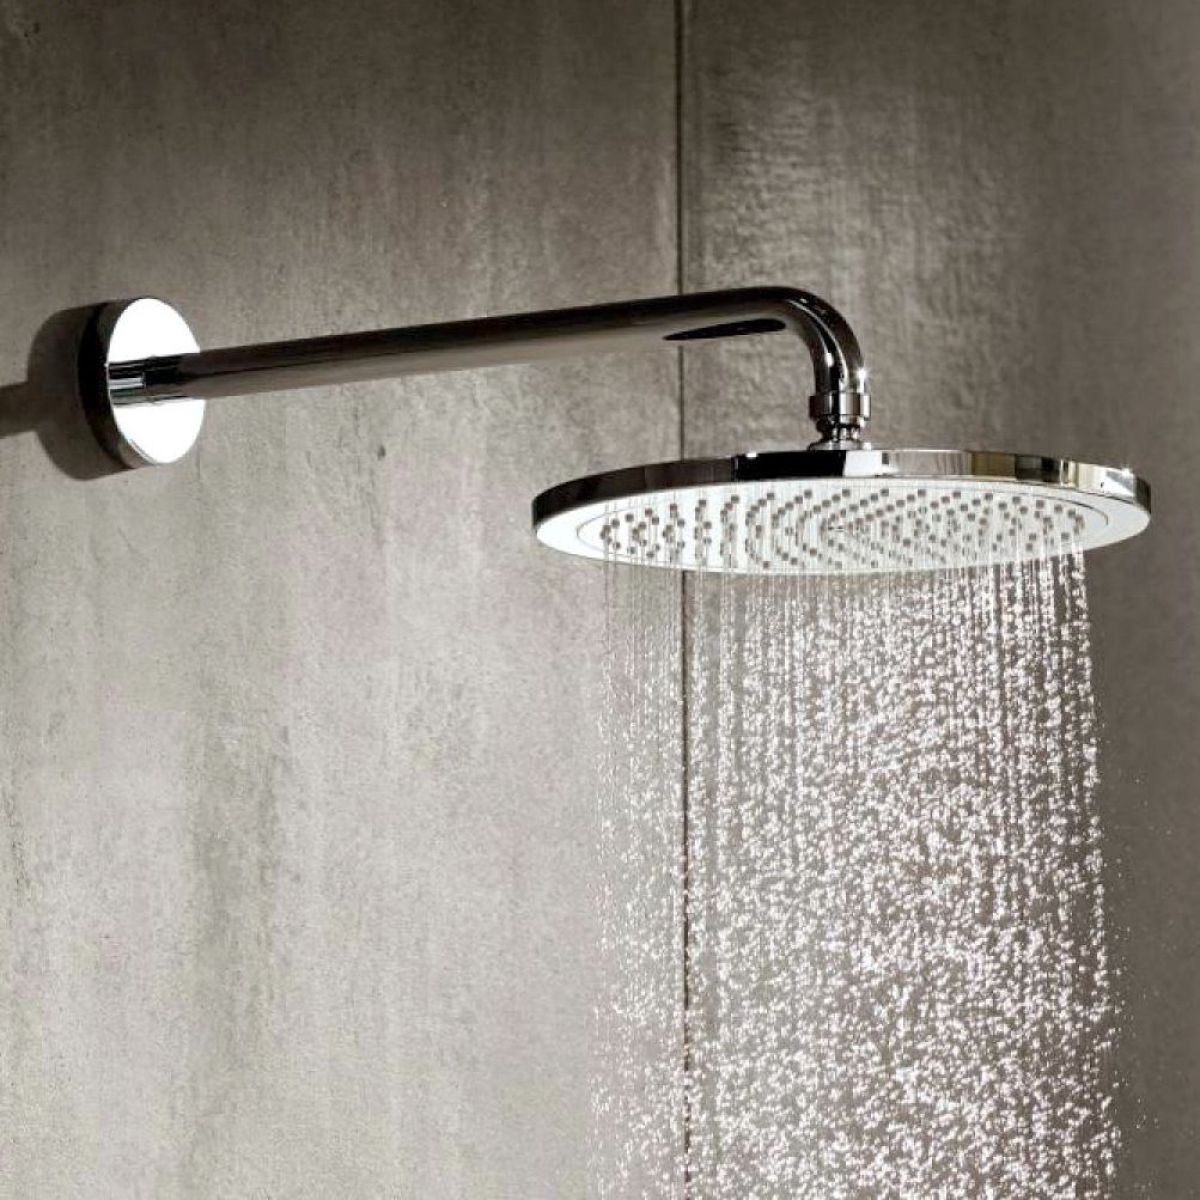 Hansgrohe Croma 280 Air 1jet Overhead Shower Fixed Shower Head